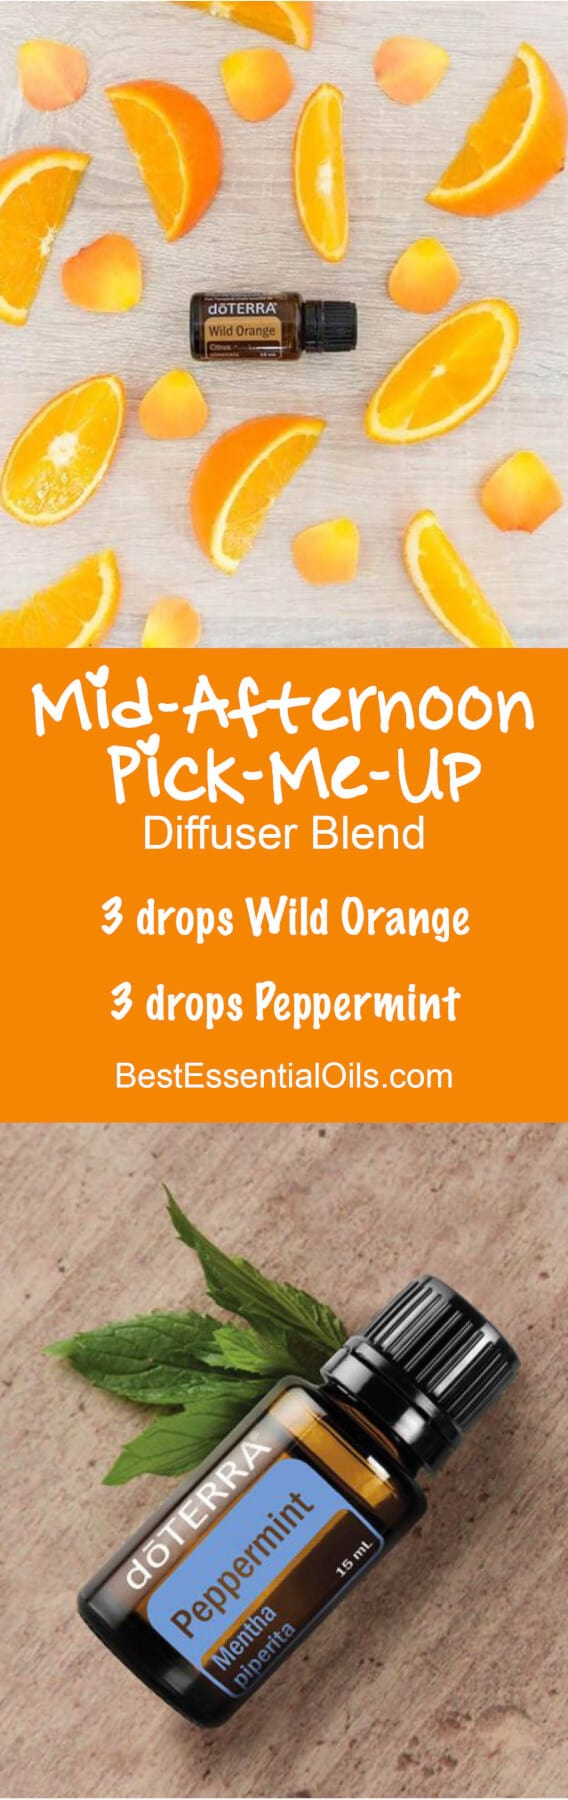 Mid-Afternoon Pick-Me-Up doTERRA Diffuser Blend